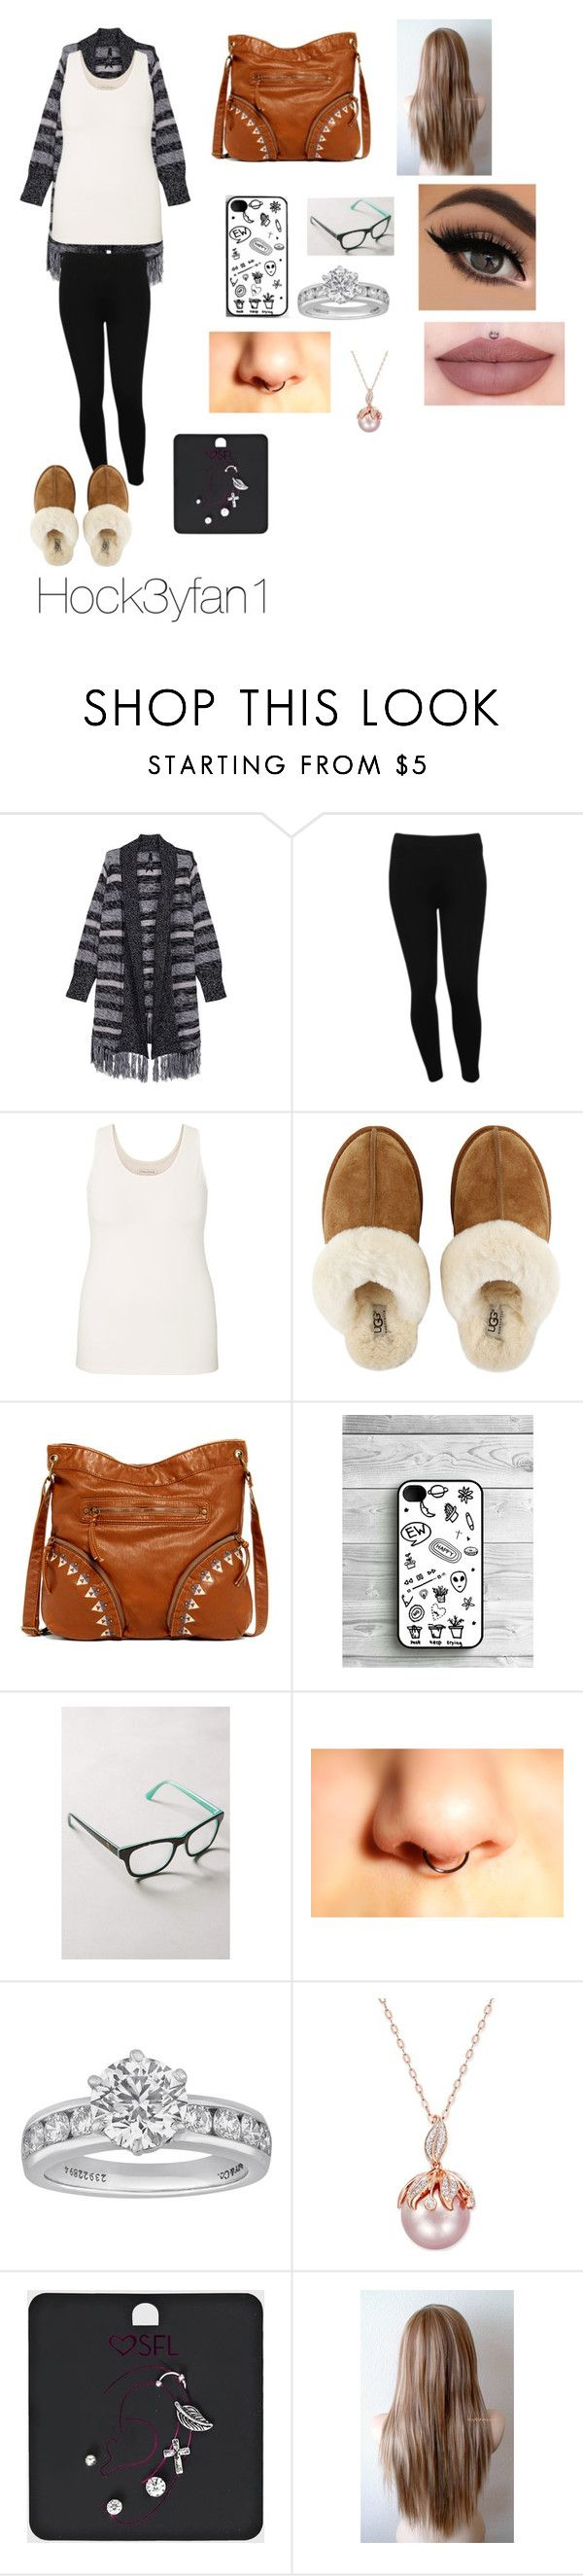 """""""My sister(or at least I tried to make an outfit she would wear)"""" by emilylvmuncraft ❤ liked on Polyvore featuring Melissa McCarthy Seven7, M&Co, maurices, UGG Australia, T-shirt & Jeans, Anthropologie, Tiffany & Co. and plus size clothing"""